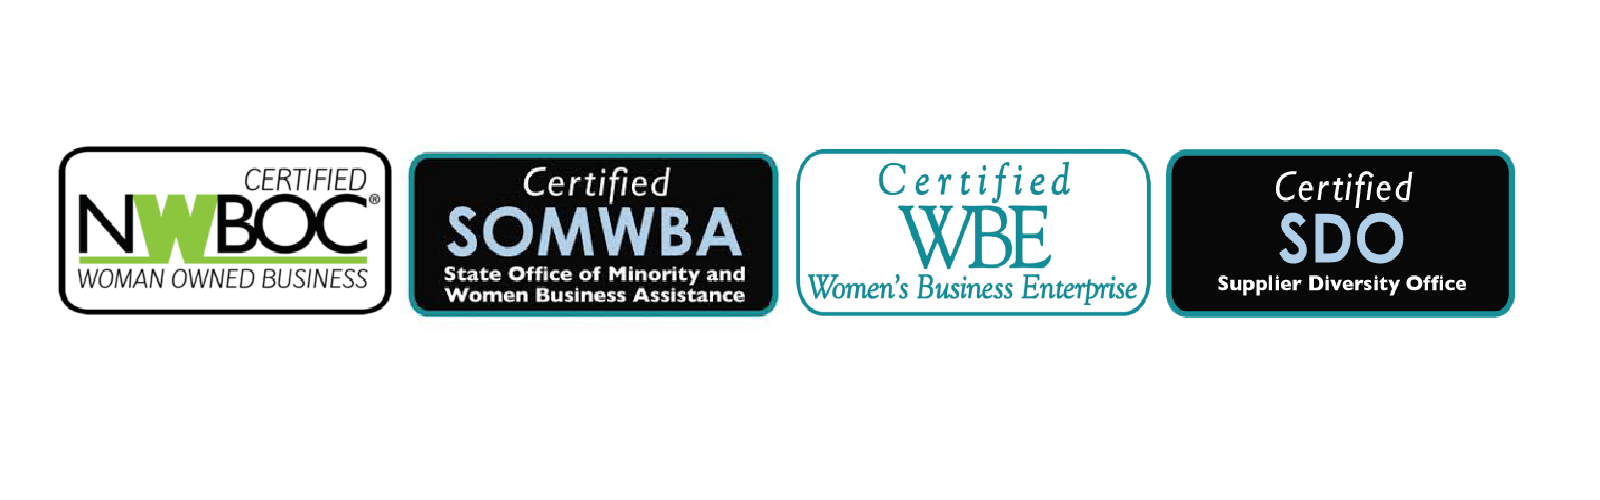 Zelus Diversity and Woman Owned Business Certifications: Certified NWBOC Certified SOMWBA Certified WBE Certified SDO